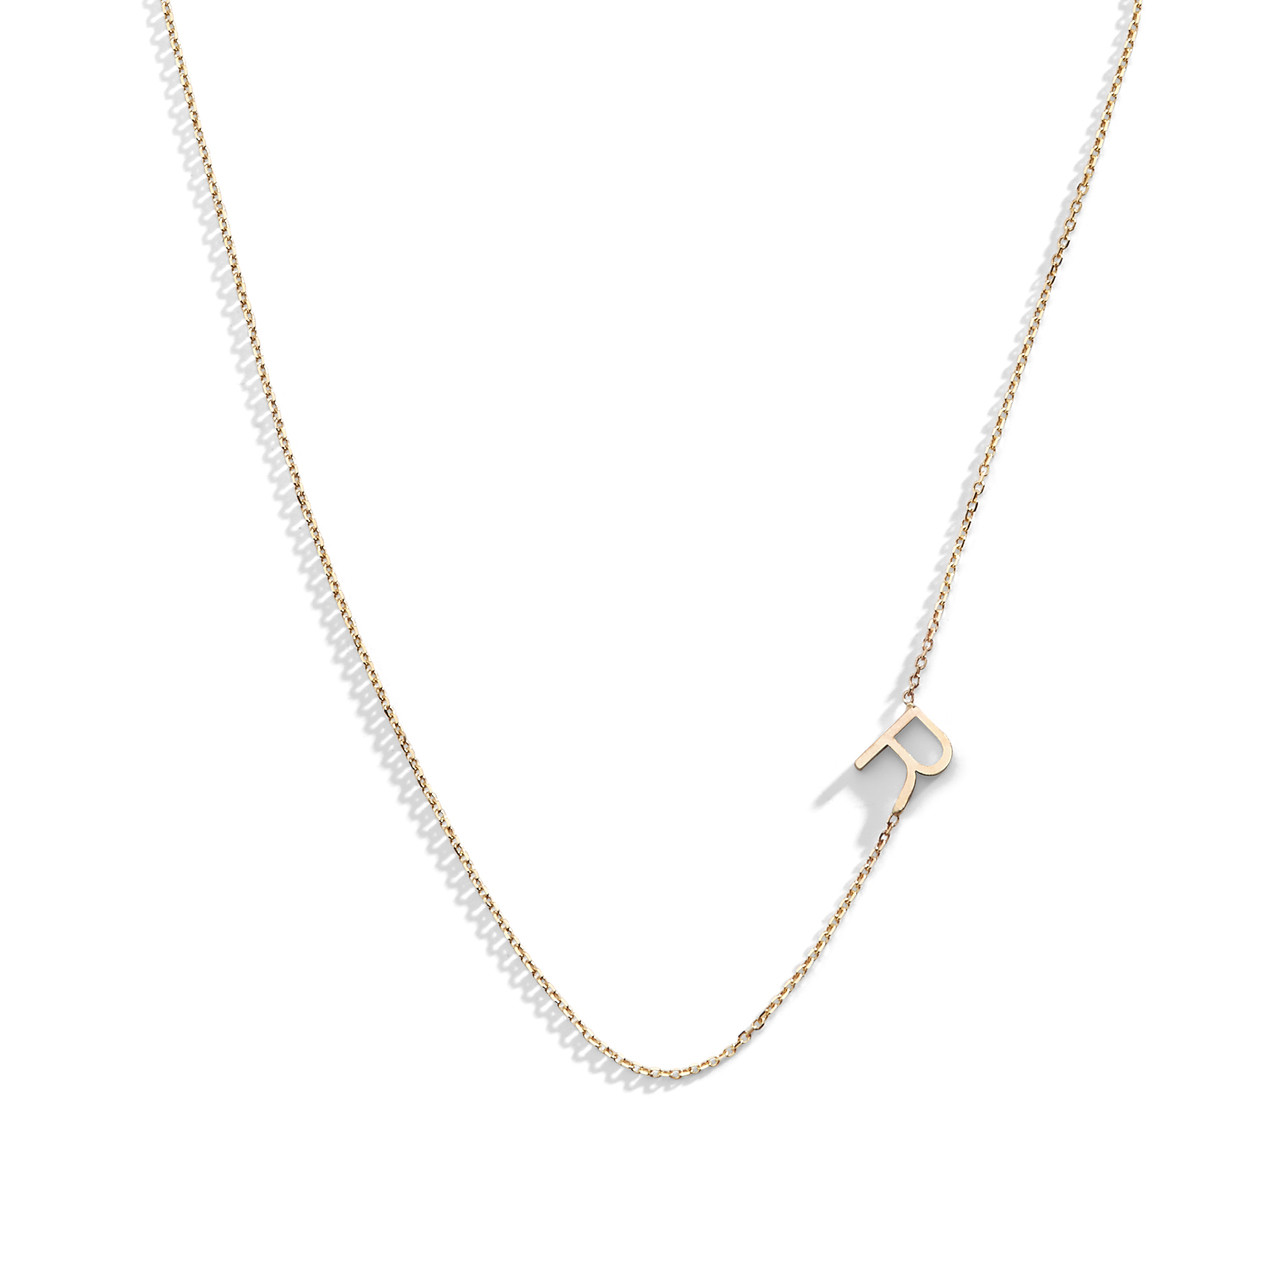 of coleman a necklace and love lariat sparkling design delicate lmt gold arrow full products phoebe featuring heart